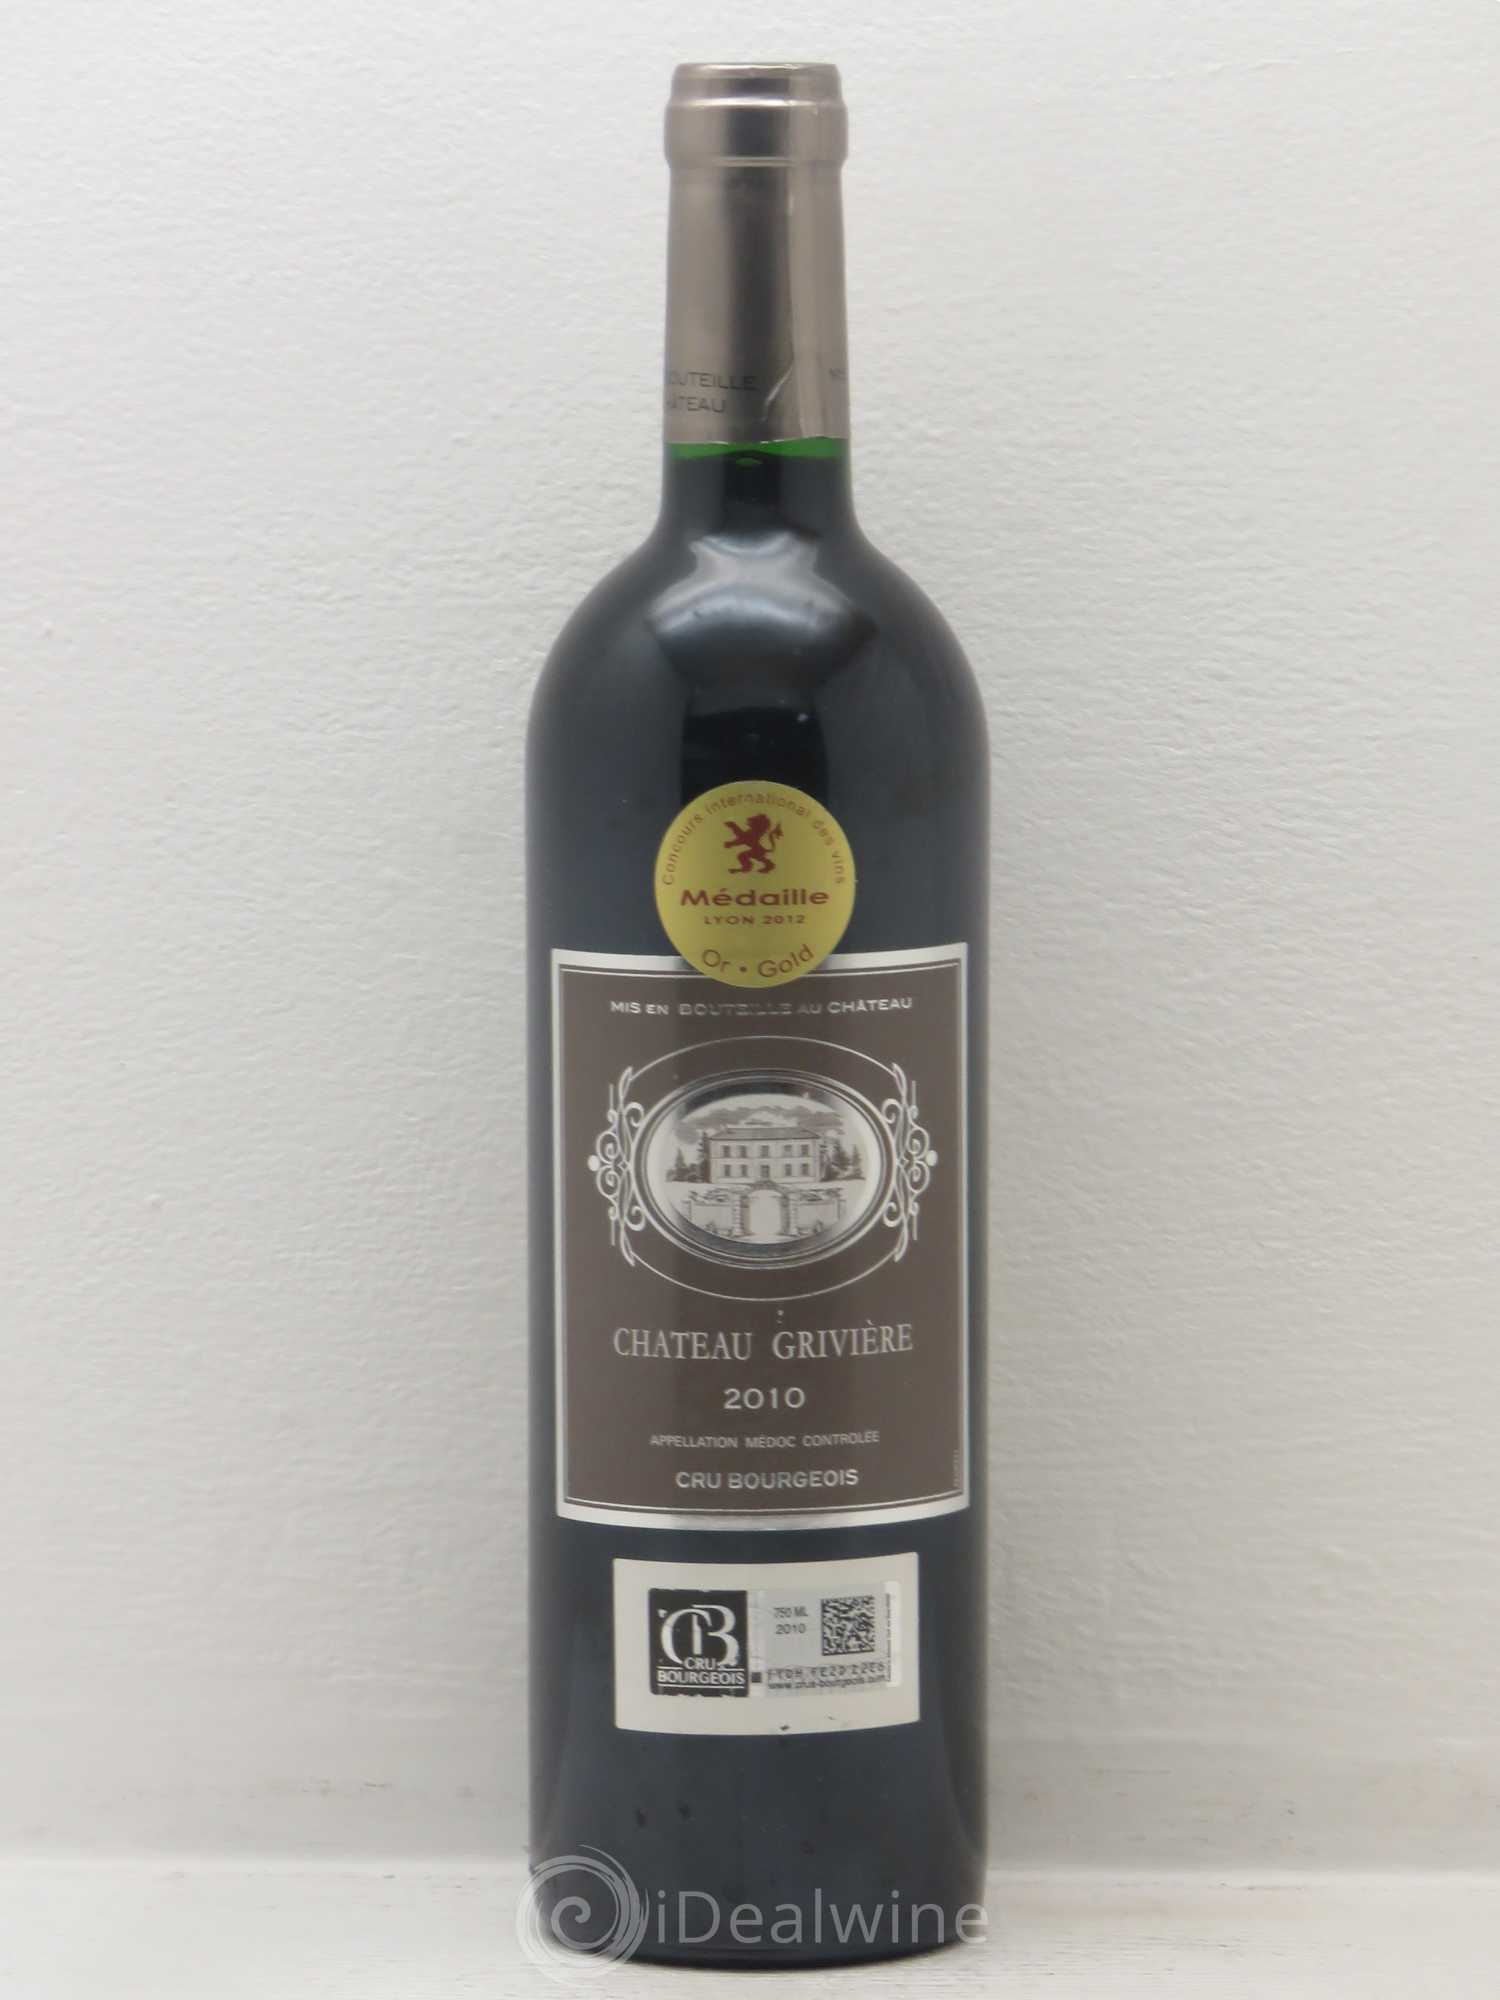 Chateau griviere